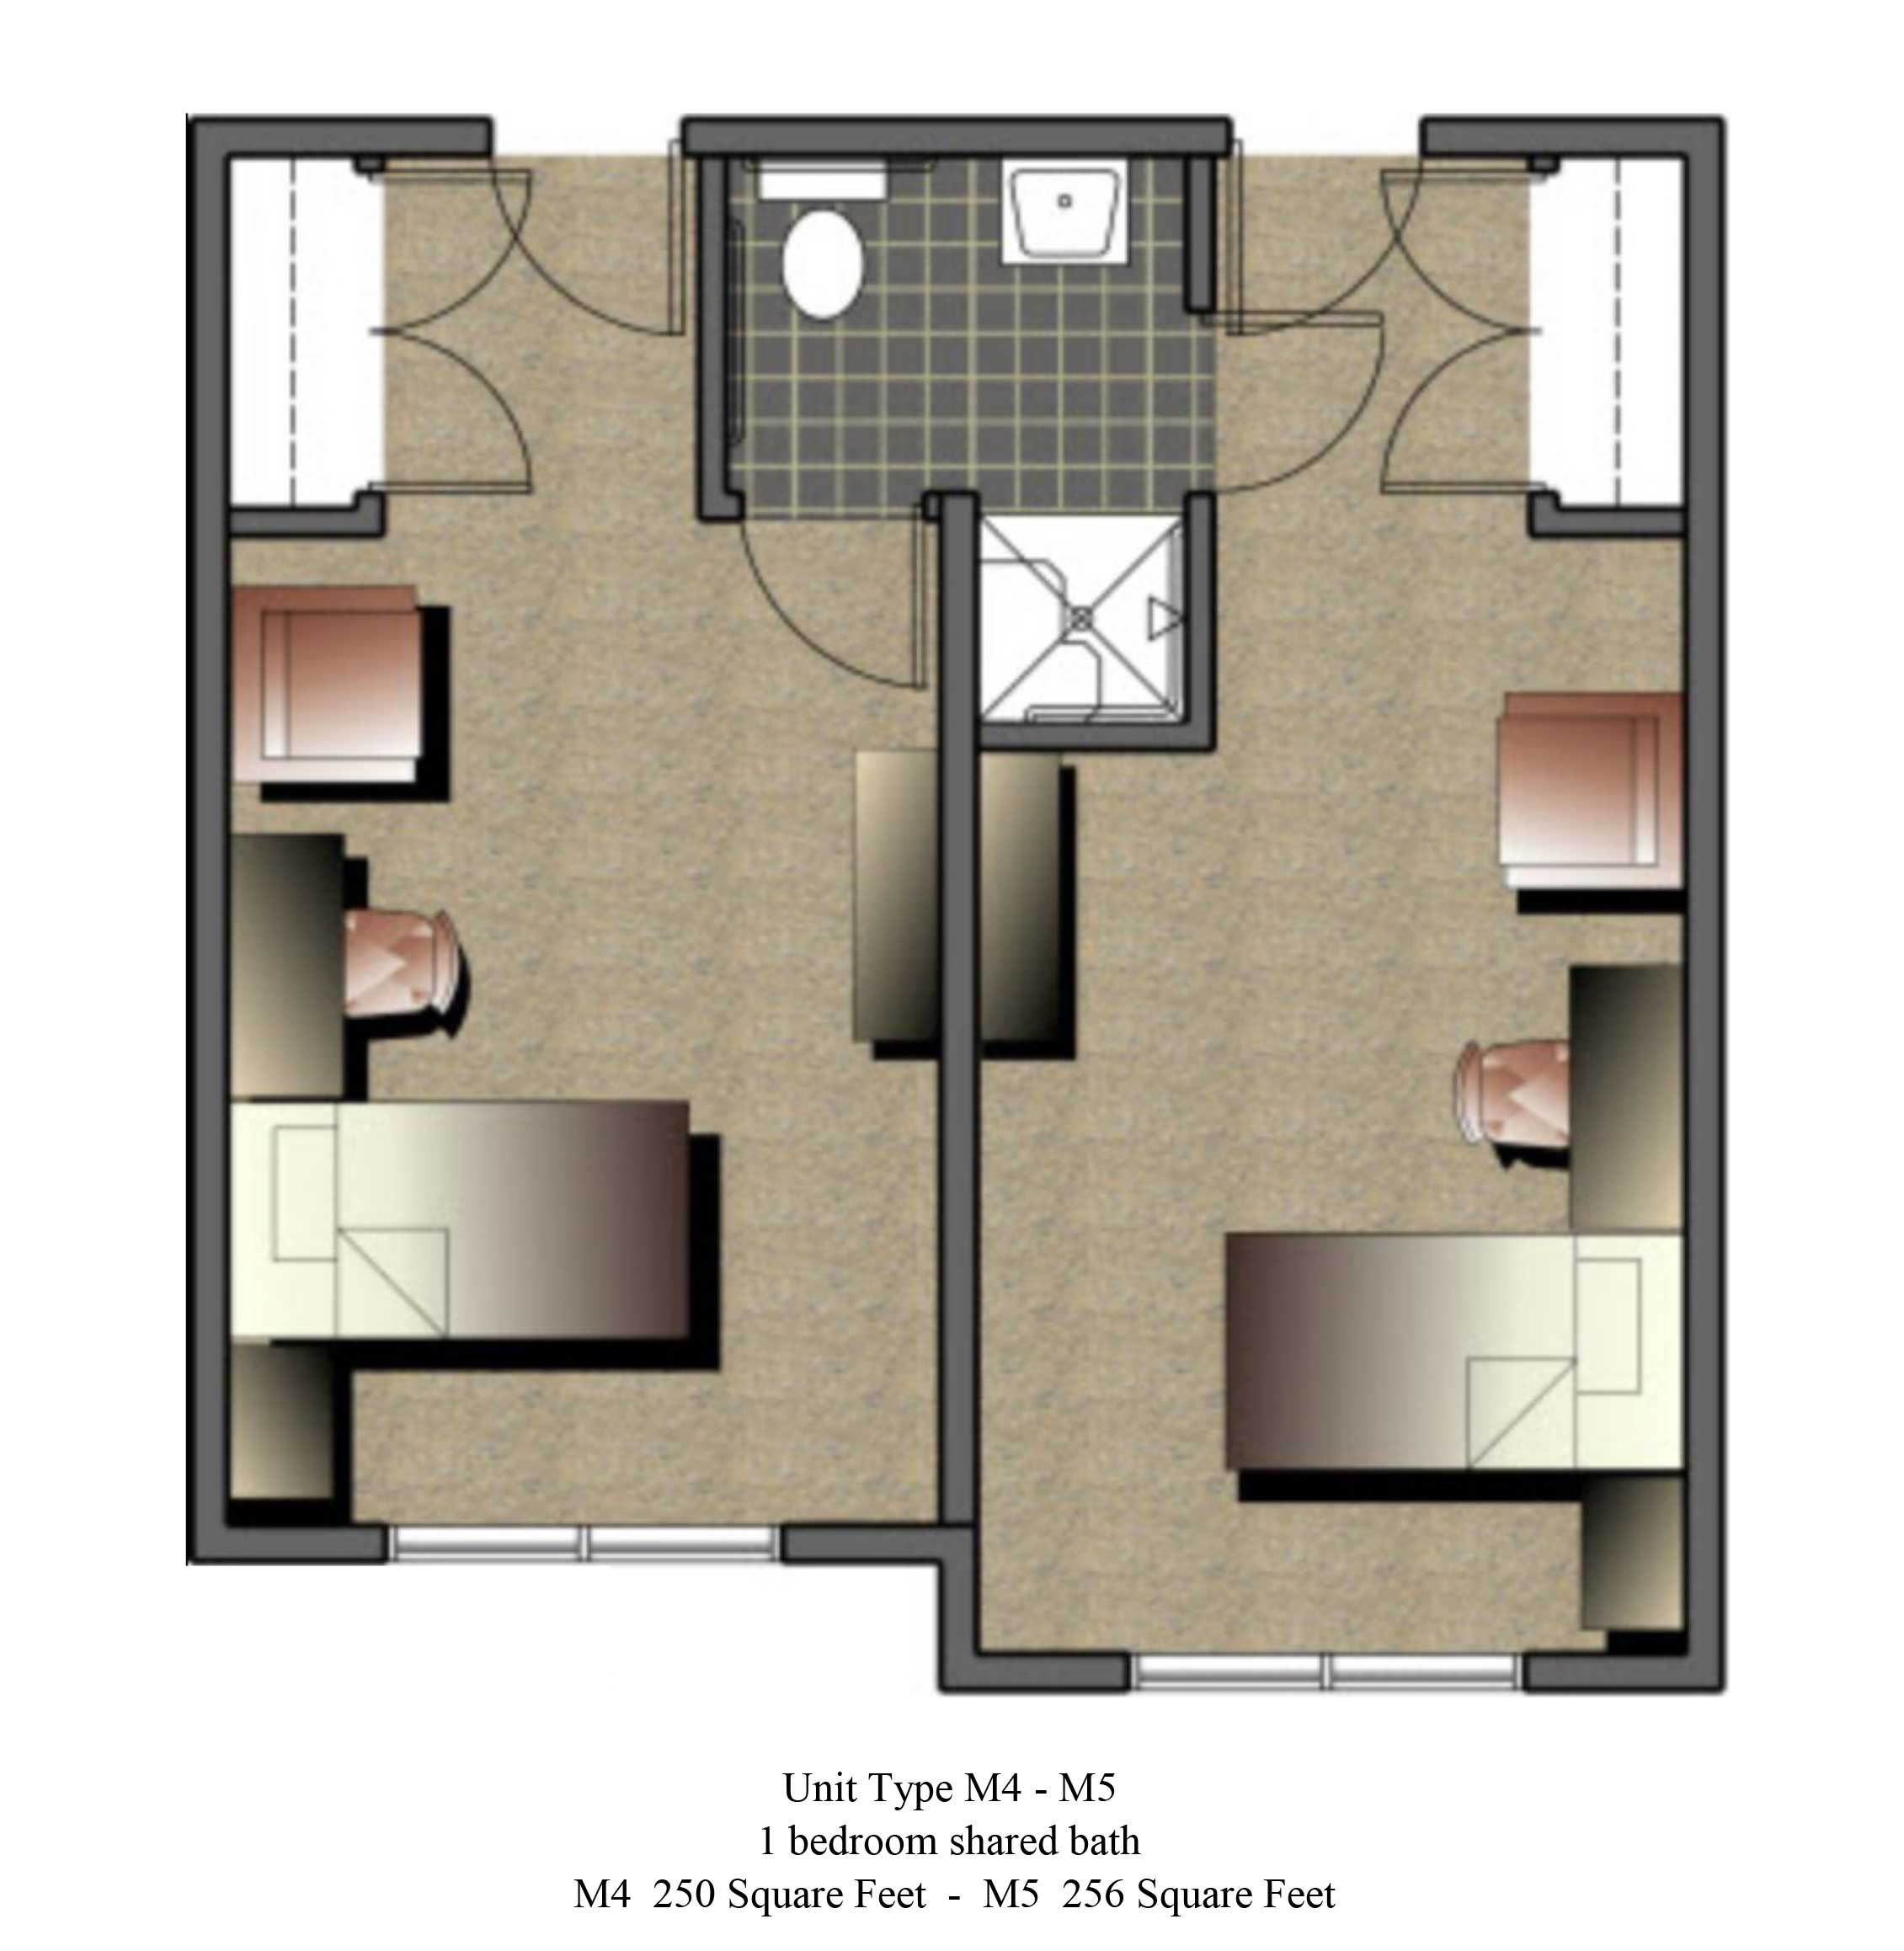 Two bedroom, 250 - 256 SQ FT